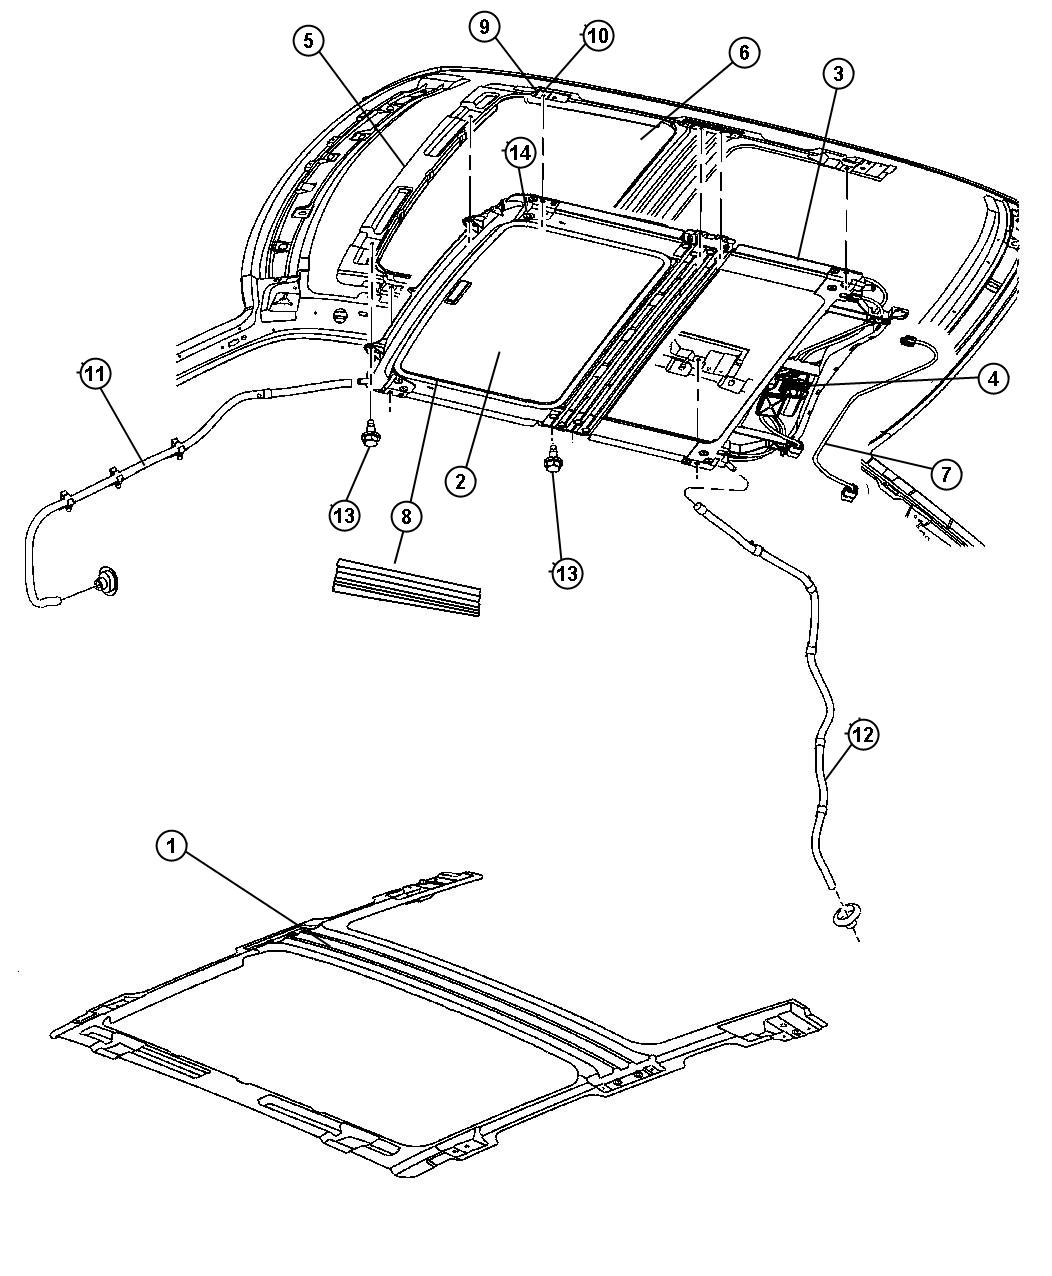 5 7 Dodge Engine Diagram besides Wiring Diagram Xt225 also Honda Shadow 1100 Wiring Diagrams For Free additionally Yamaha Xt225 Wiring Diagram as well Robin Engine Golf Cart. on yamaha xt250 wiring diagram